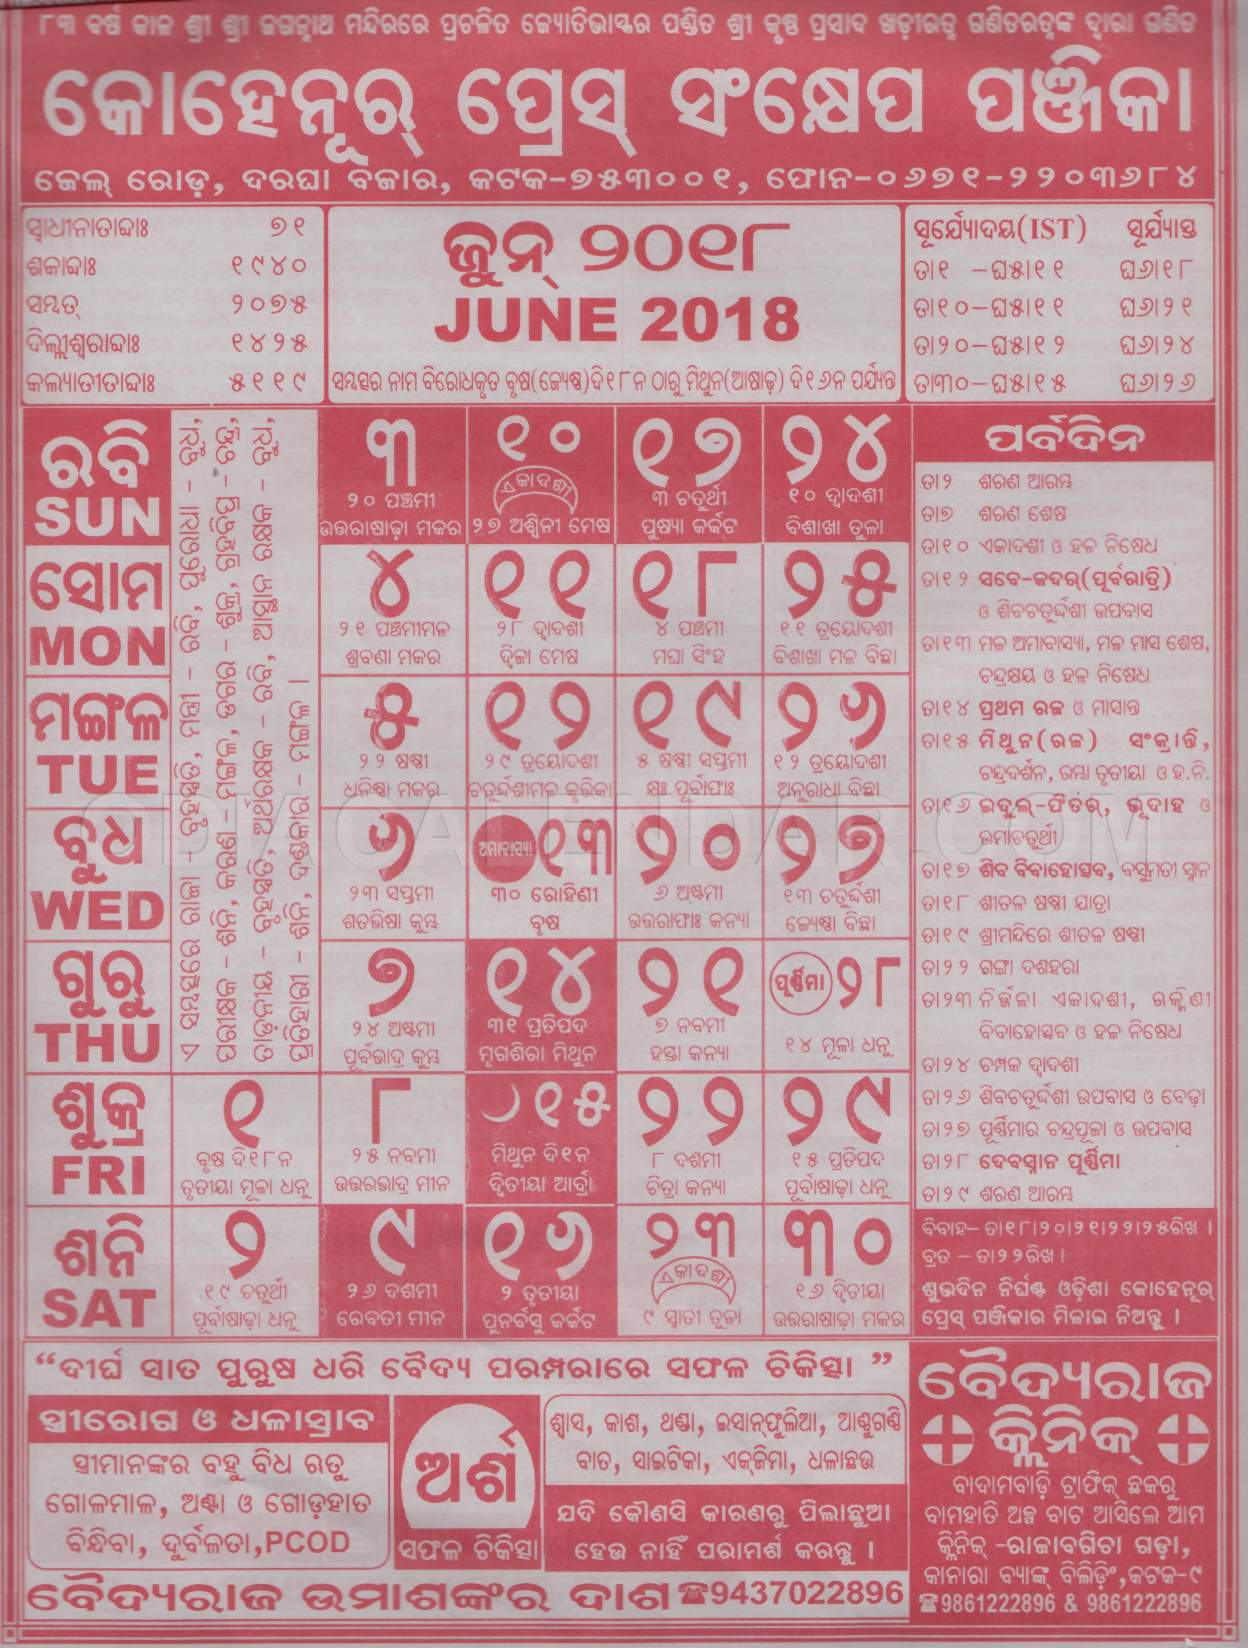 June 2018 Odia Calendar With Festivals